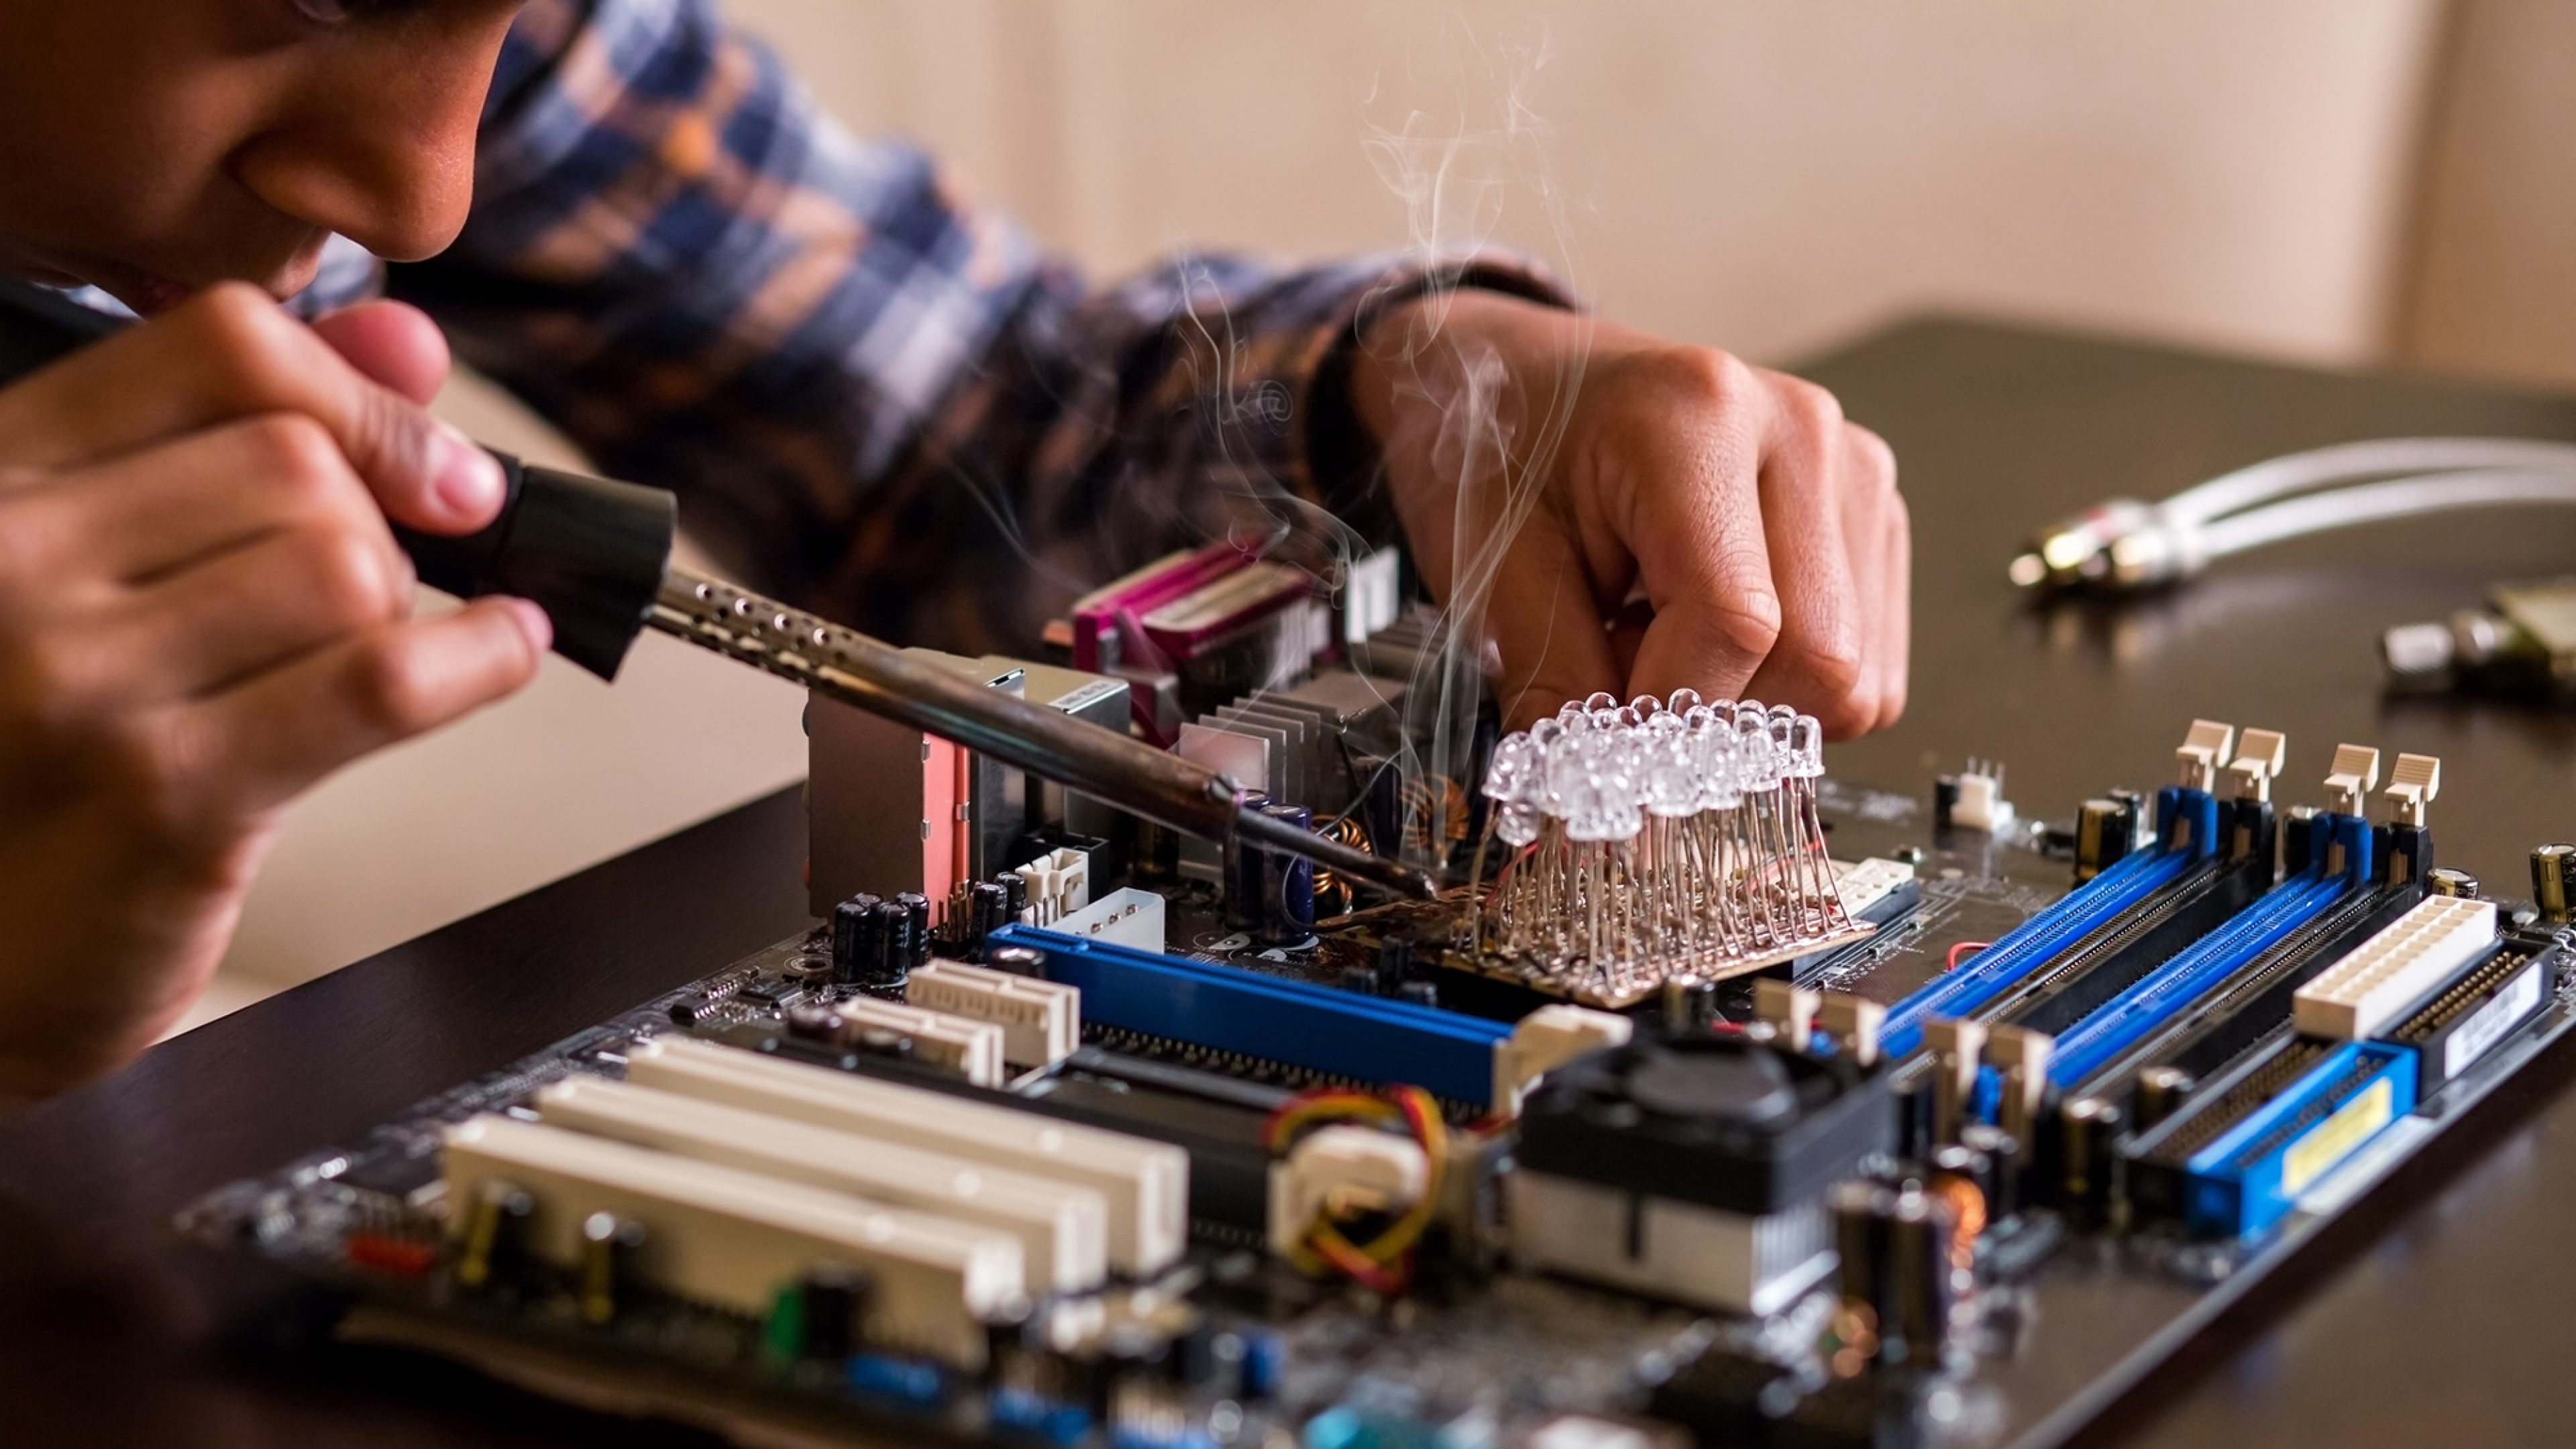 A male technician solders parts on a computer motherboard